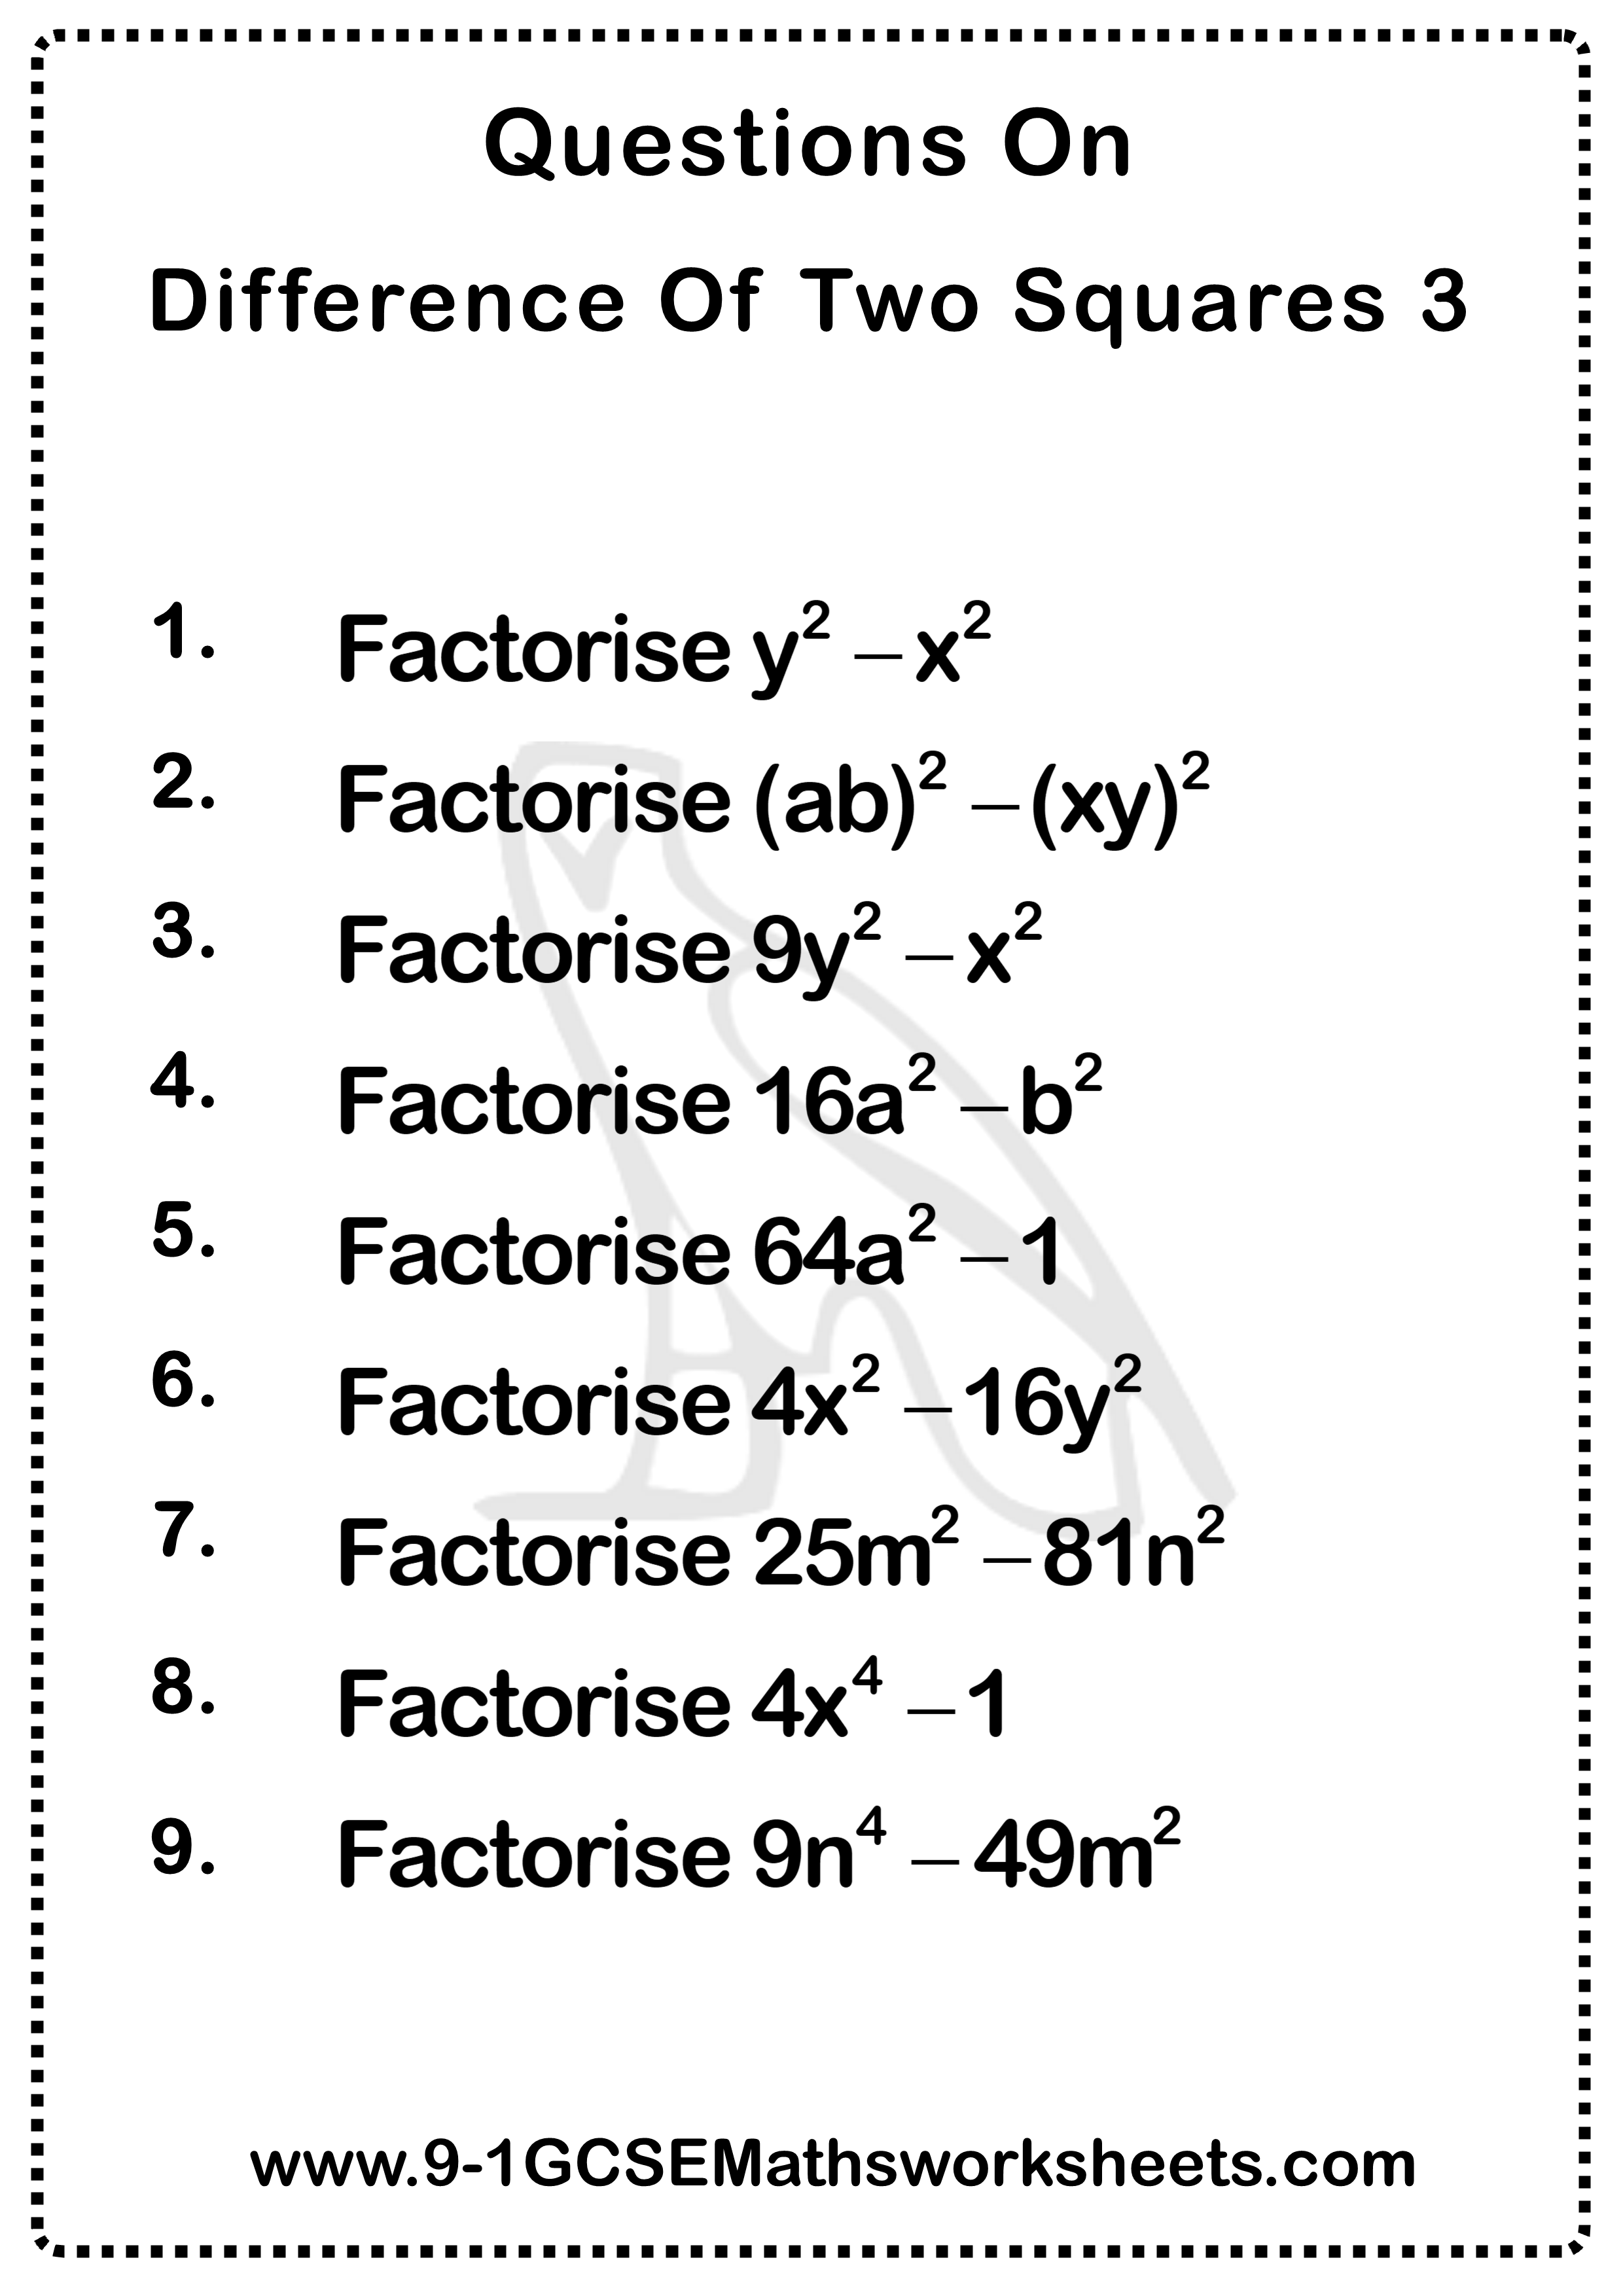 Difference Of Two Squares Worksheet Practice Questions